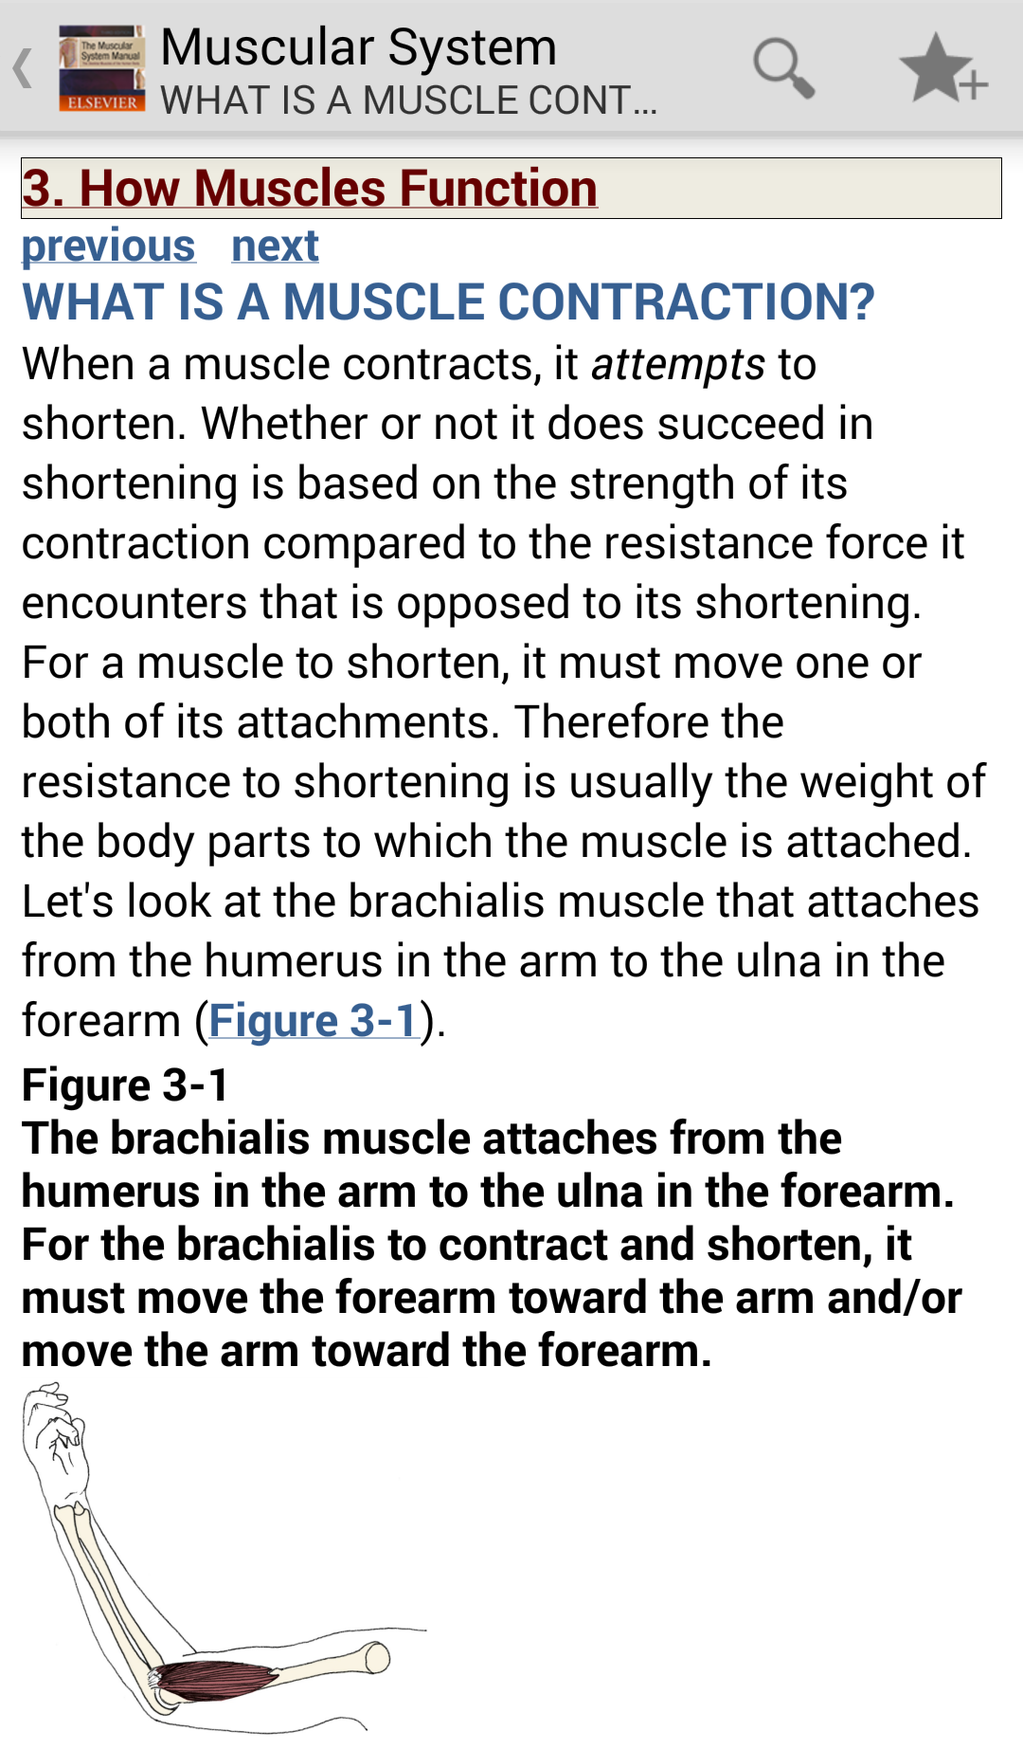 The Muscular System Manual: The Skeletal Muscles of the Human Body Screenshot 3